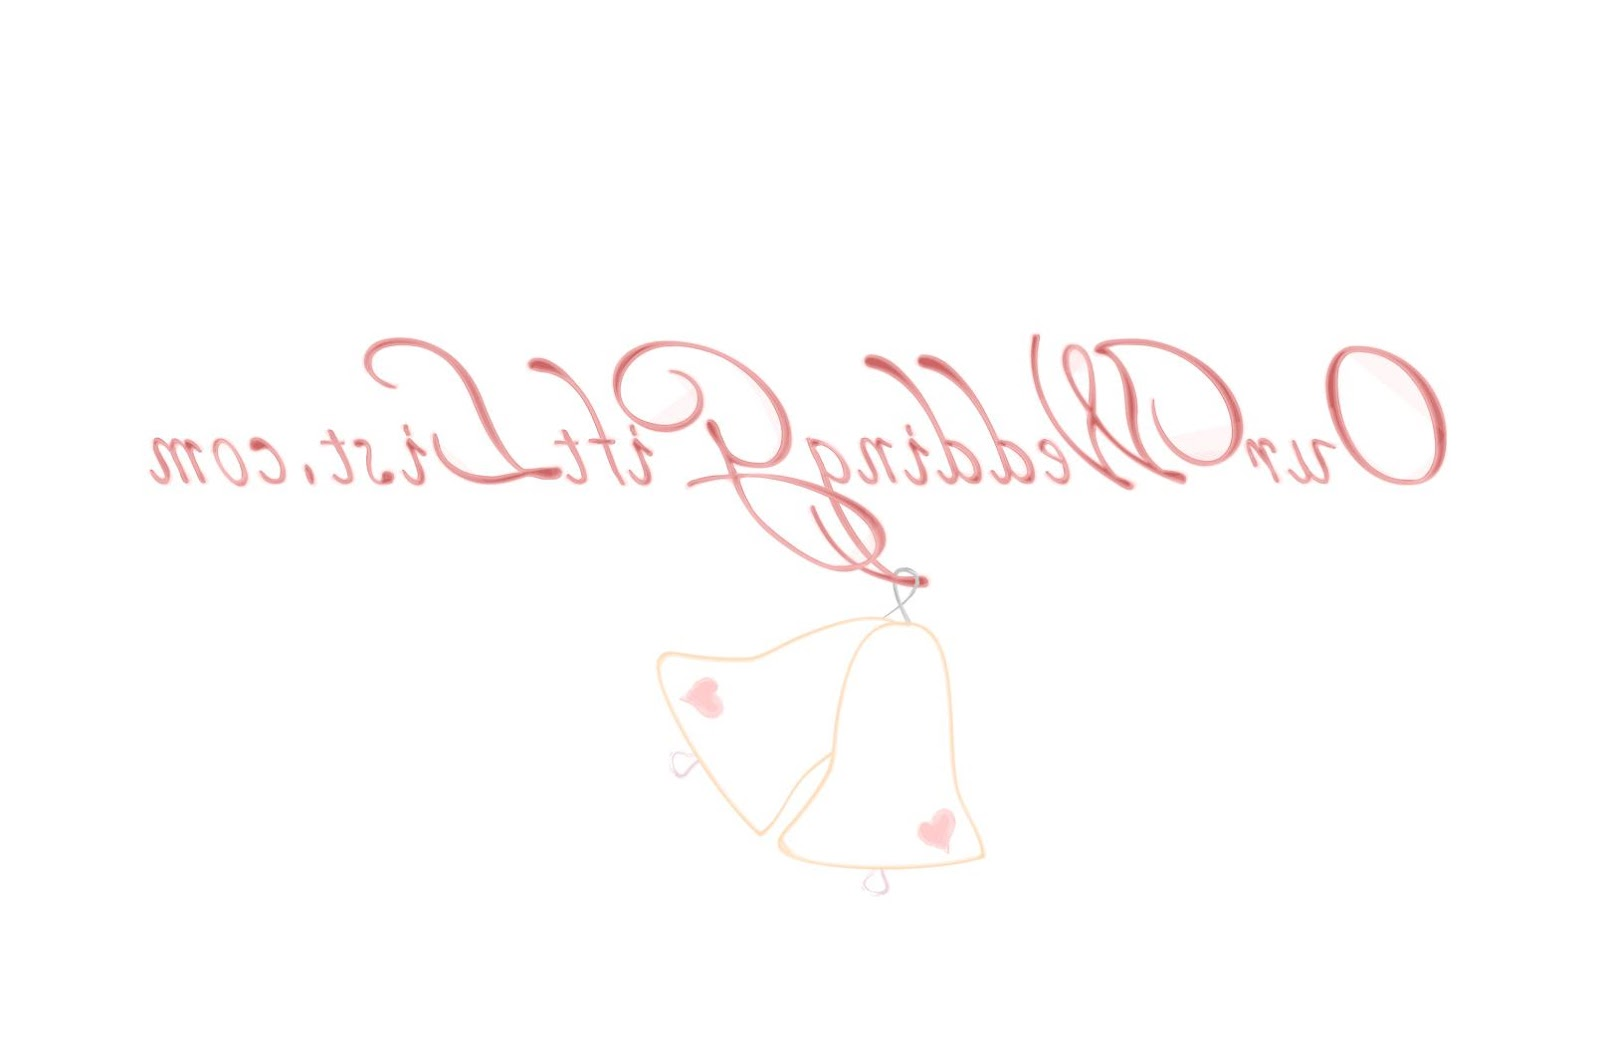 57 - Online Wedding Gift List Service needs company logo. Design by